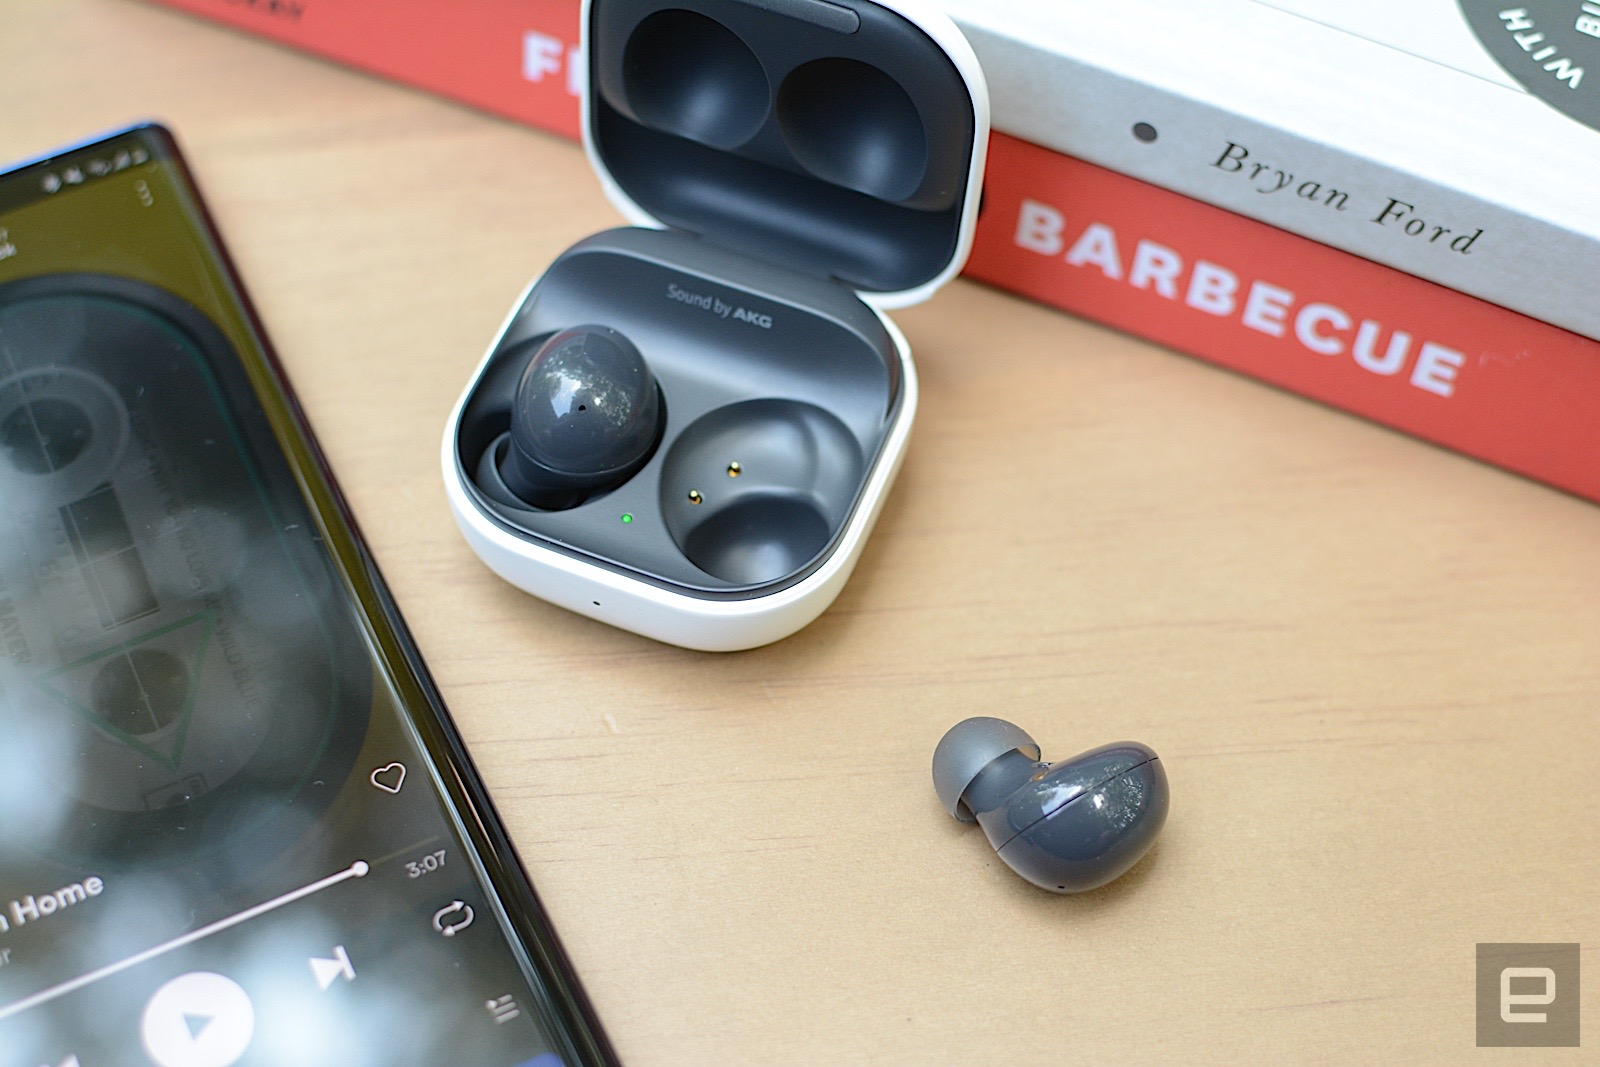 With the Galaxy Buds 2, Samsung adds active noise cancellation to its most affordable true wireless earbuds. This successor to the Galaxy Buds+ are smaller and more comfortable with premium features like wireless charging and adjustable ambient sound. However, ANC performance is only decent and there's no deep iOS integration like previous models. Still, at this price, Samsung has created a compelling package despite the sacrifices.